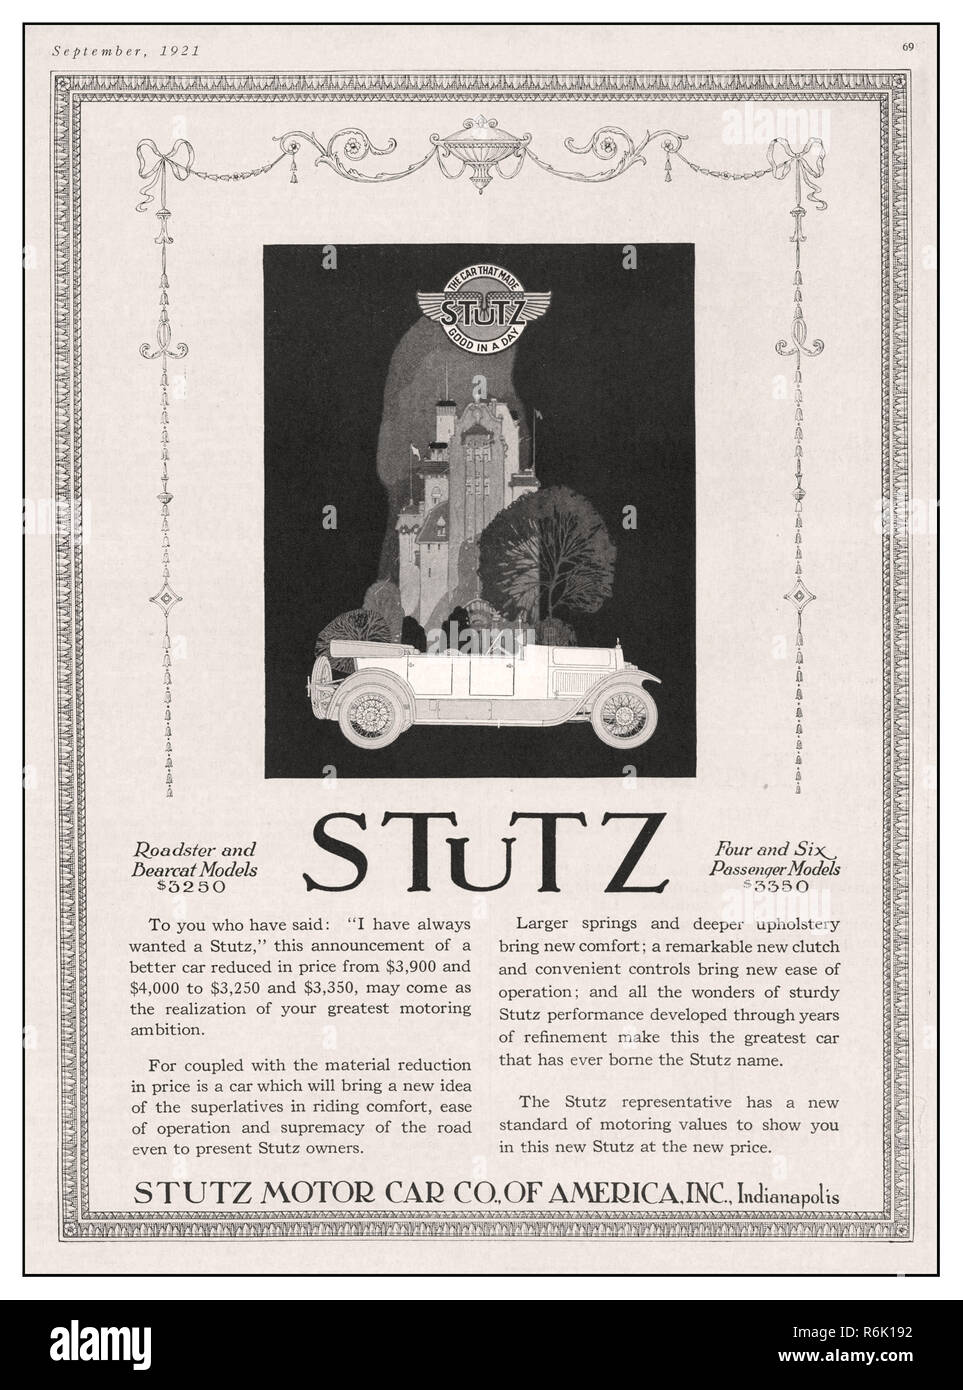 Vintage 1920s Stuz Press Magazine Advertisement For Roadster And